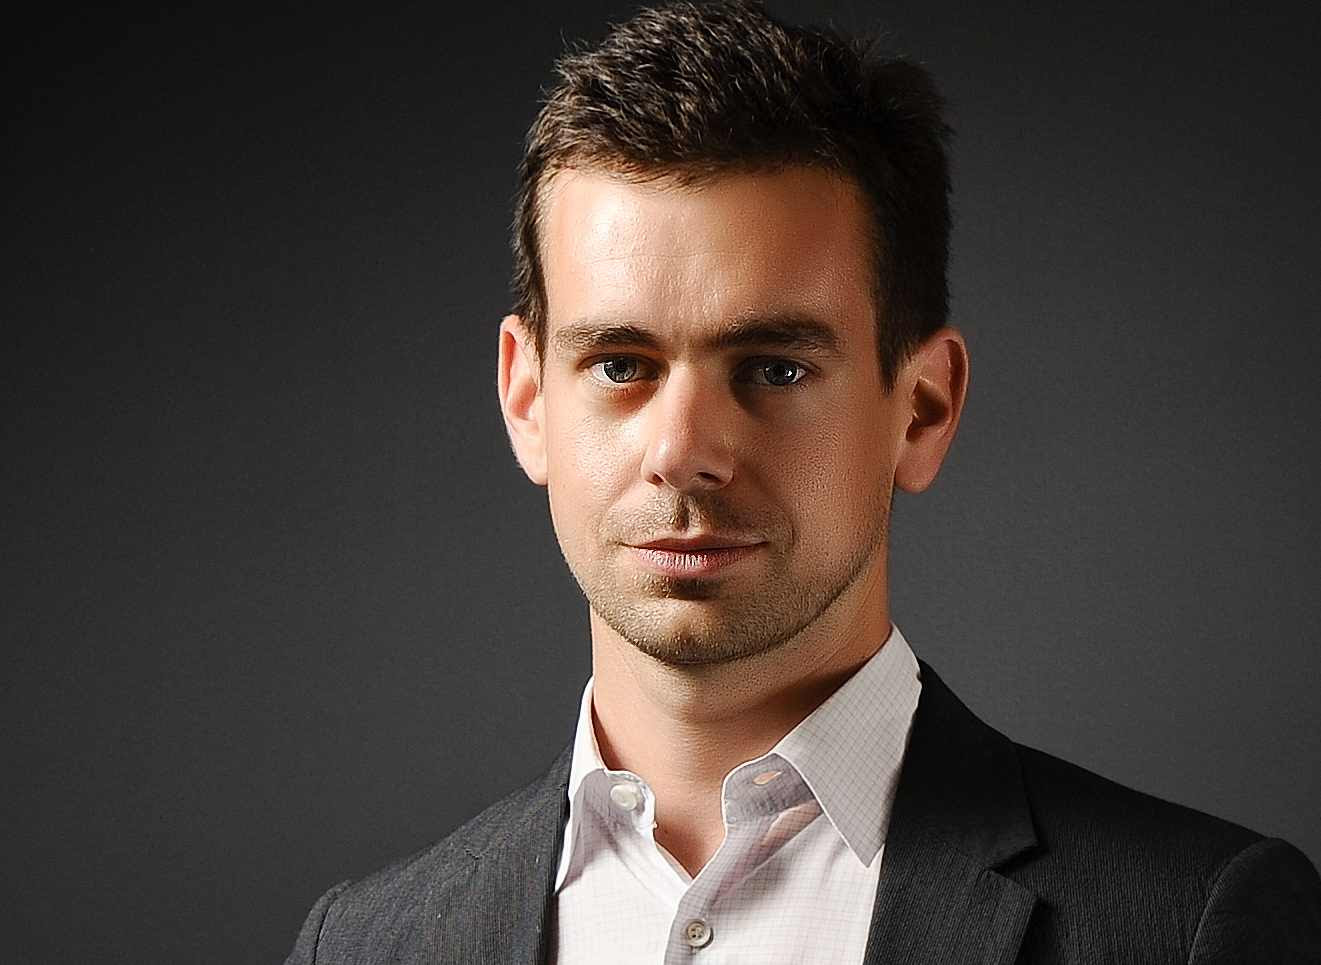 Jack Dorsey: Twitter will get 'more aggressive' policing tweets